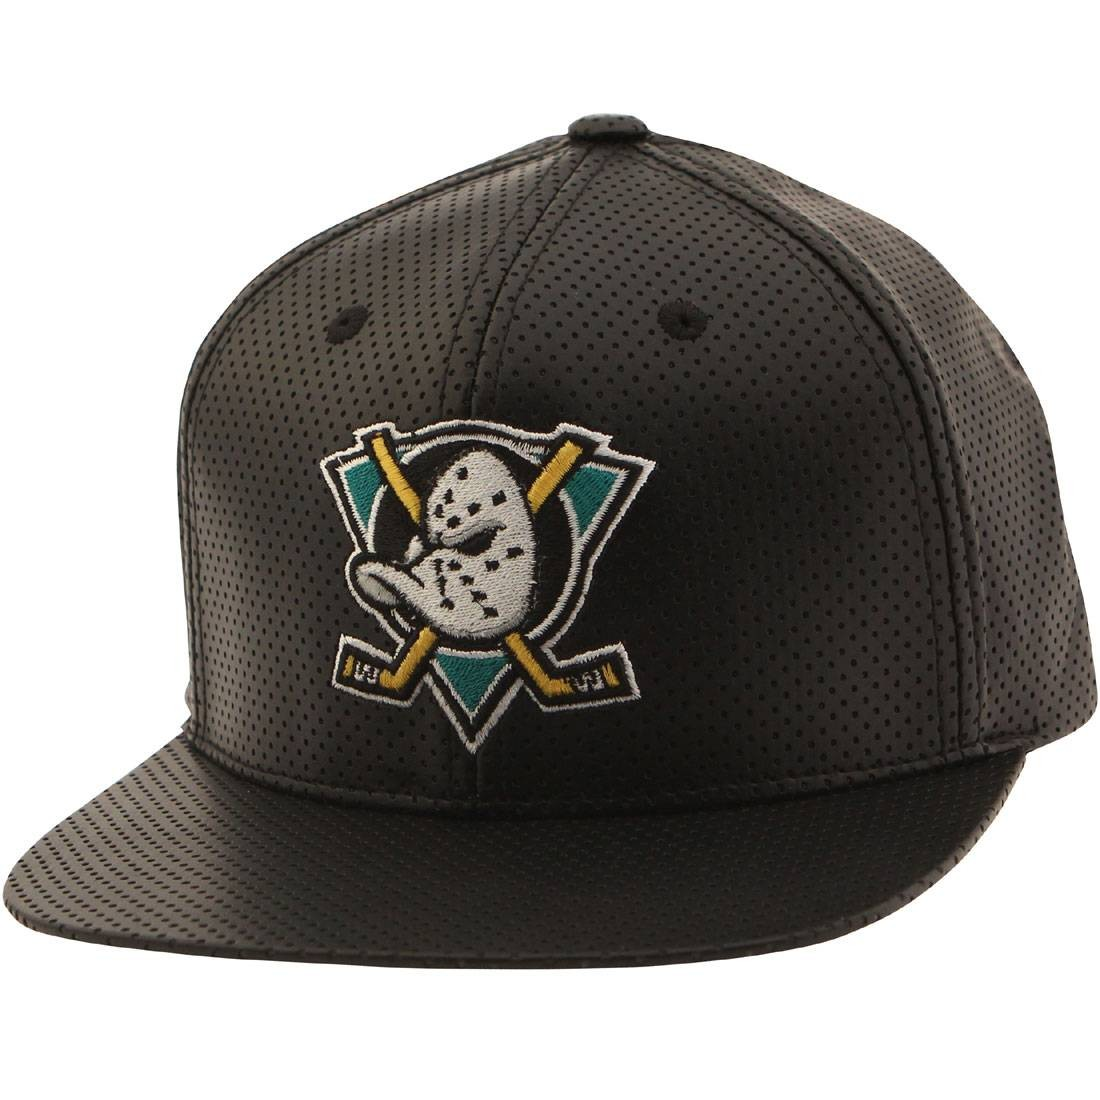 294dee18721 ... wholesale american needle nhl anahiem mighty ducks snapback cap  delirious black a4283 a332e